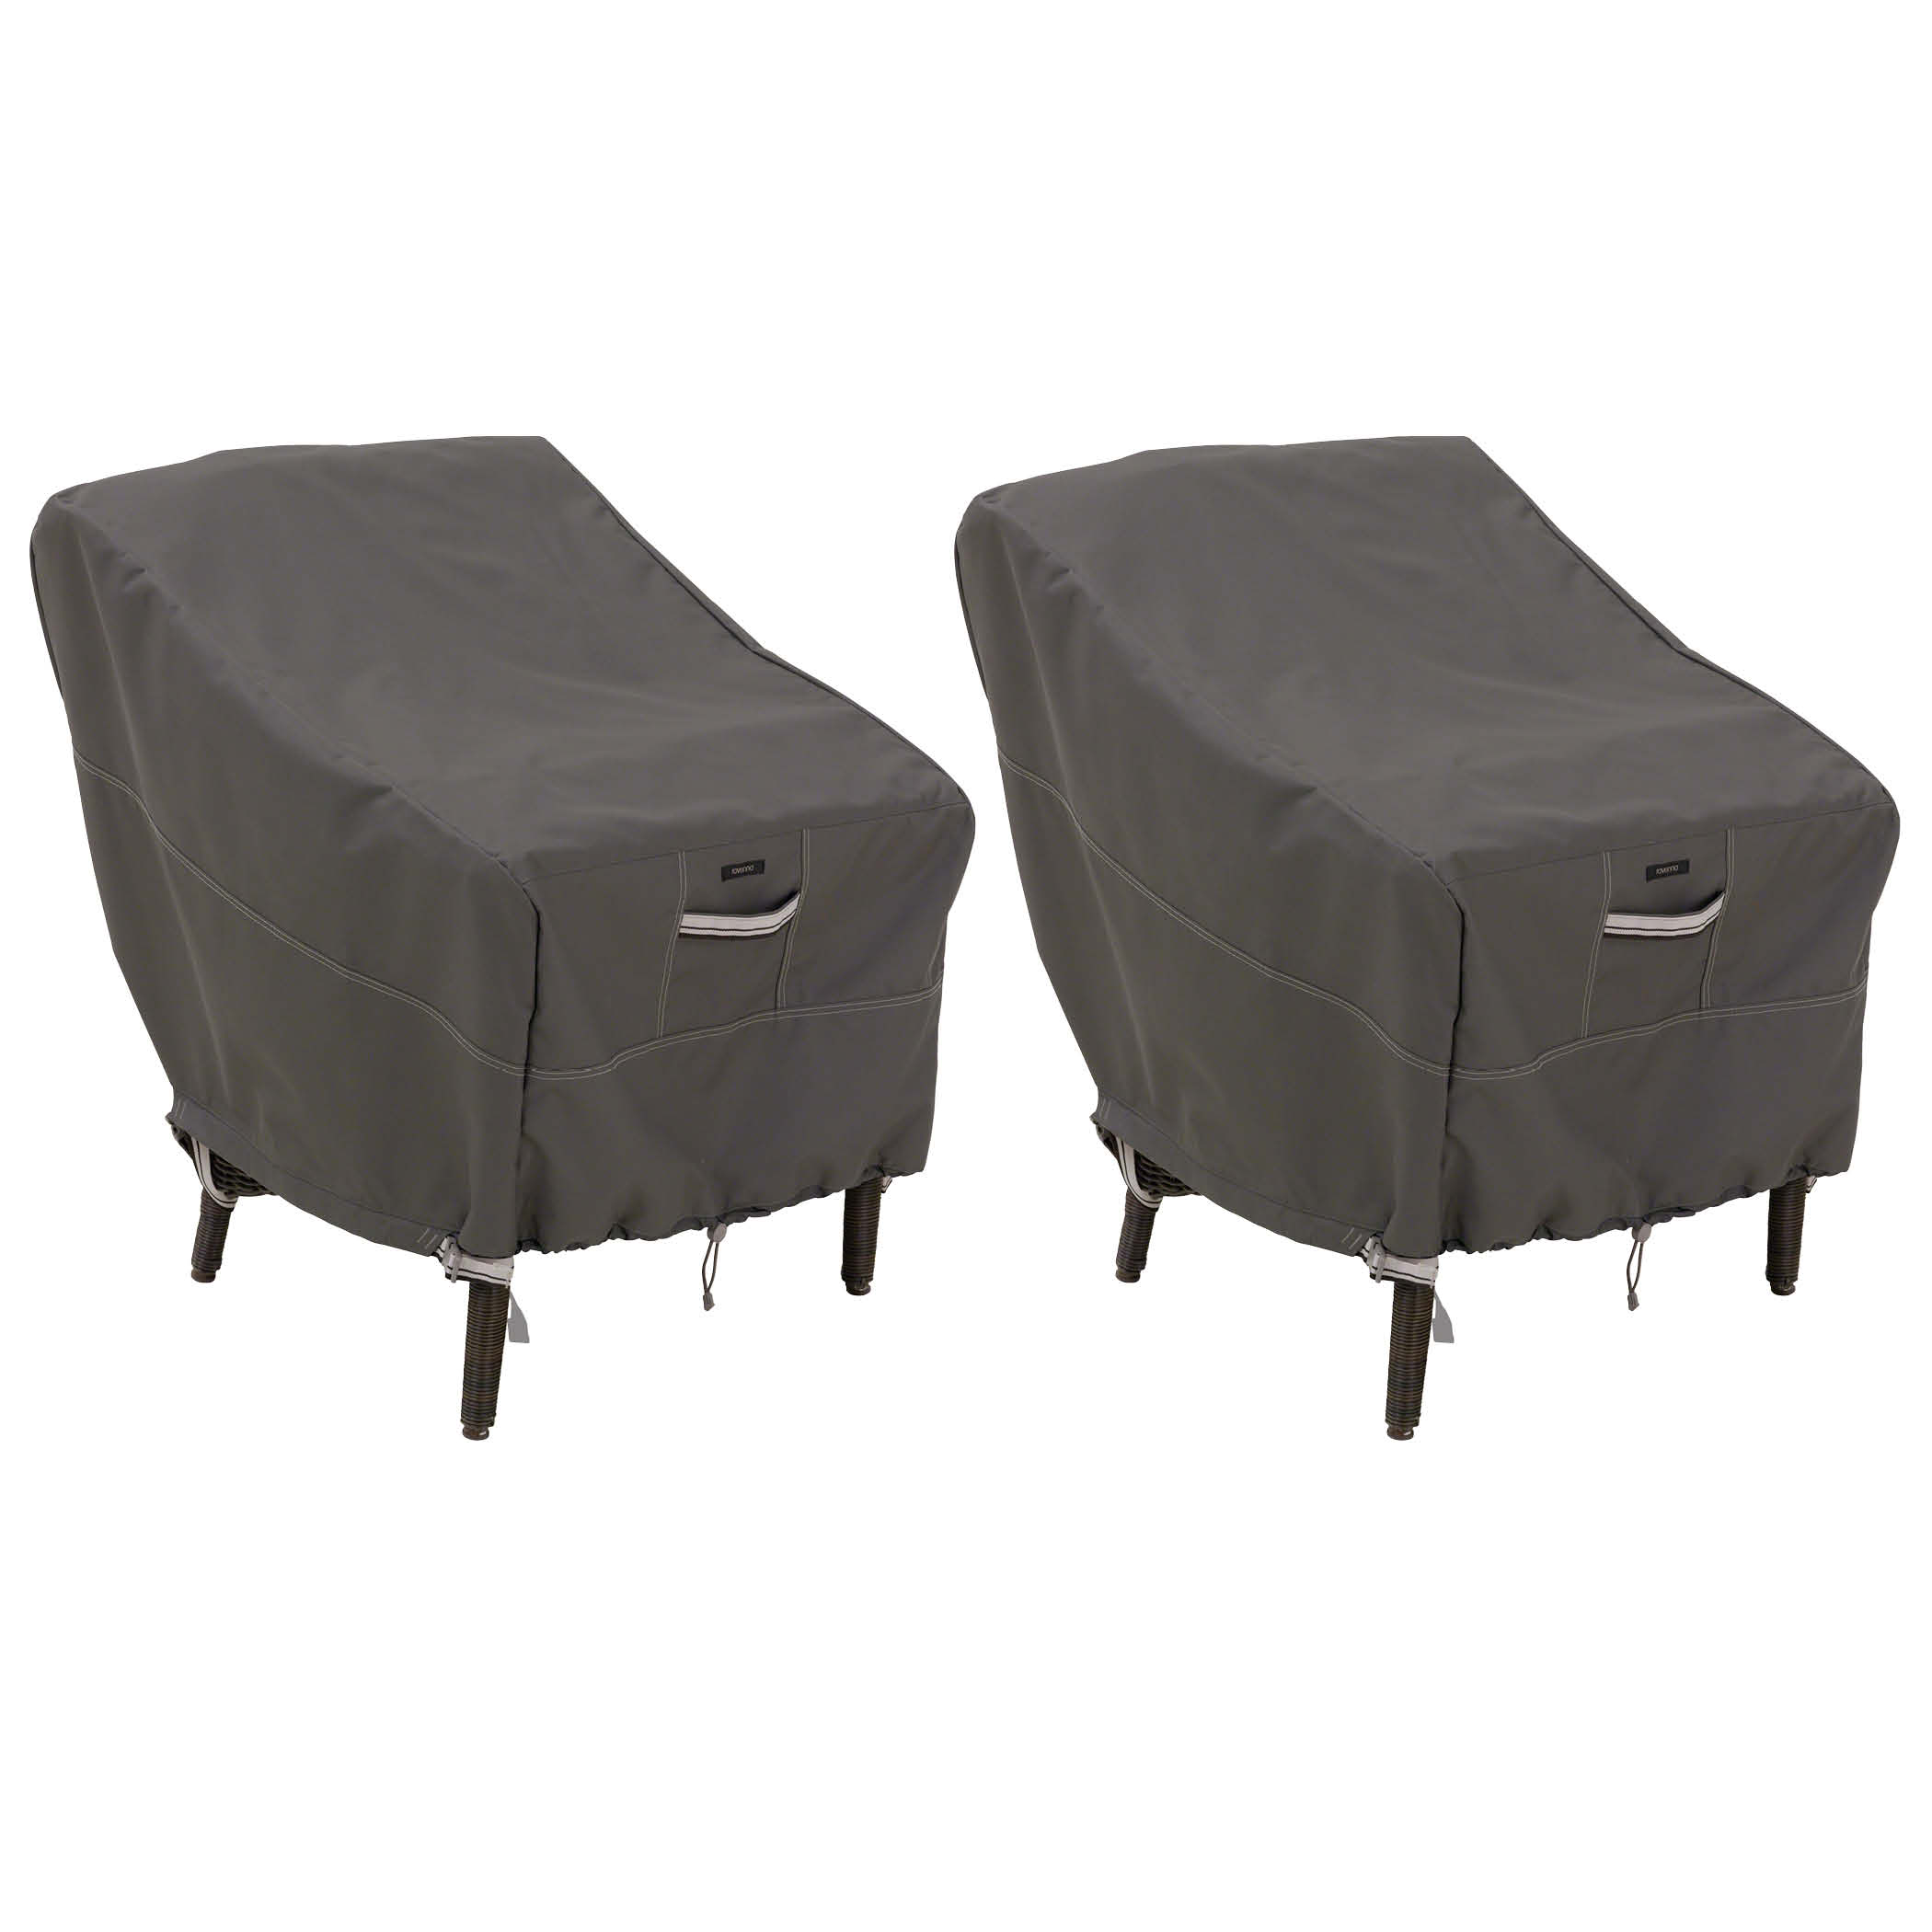 Classic Accessories Ravenna Standard Dining Patio Chair Cover - Premium Outdoor Furniture Cover with Durable and Water Resistant Fabric, 2-Pack